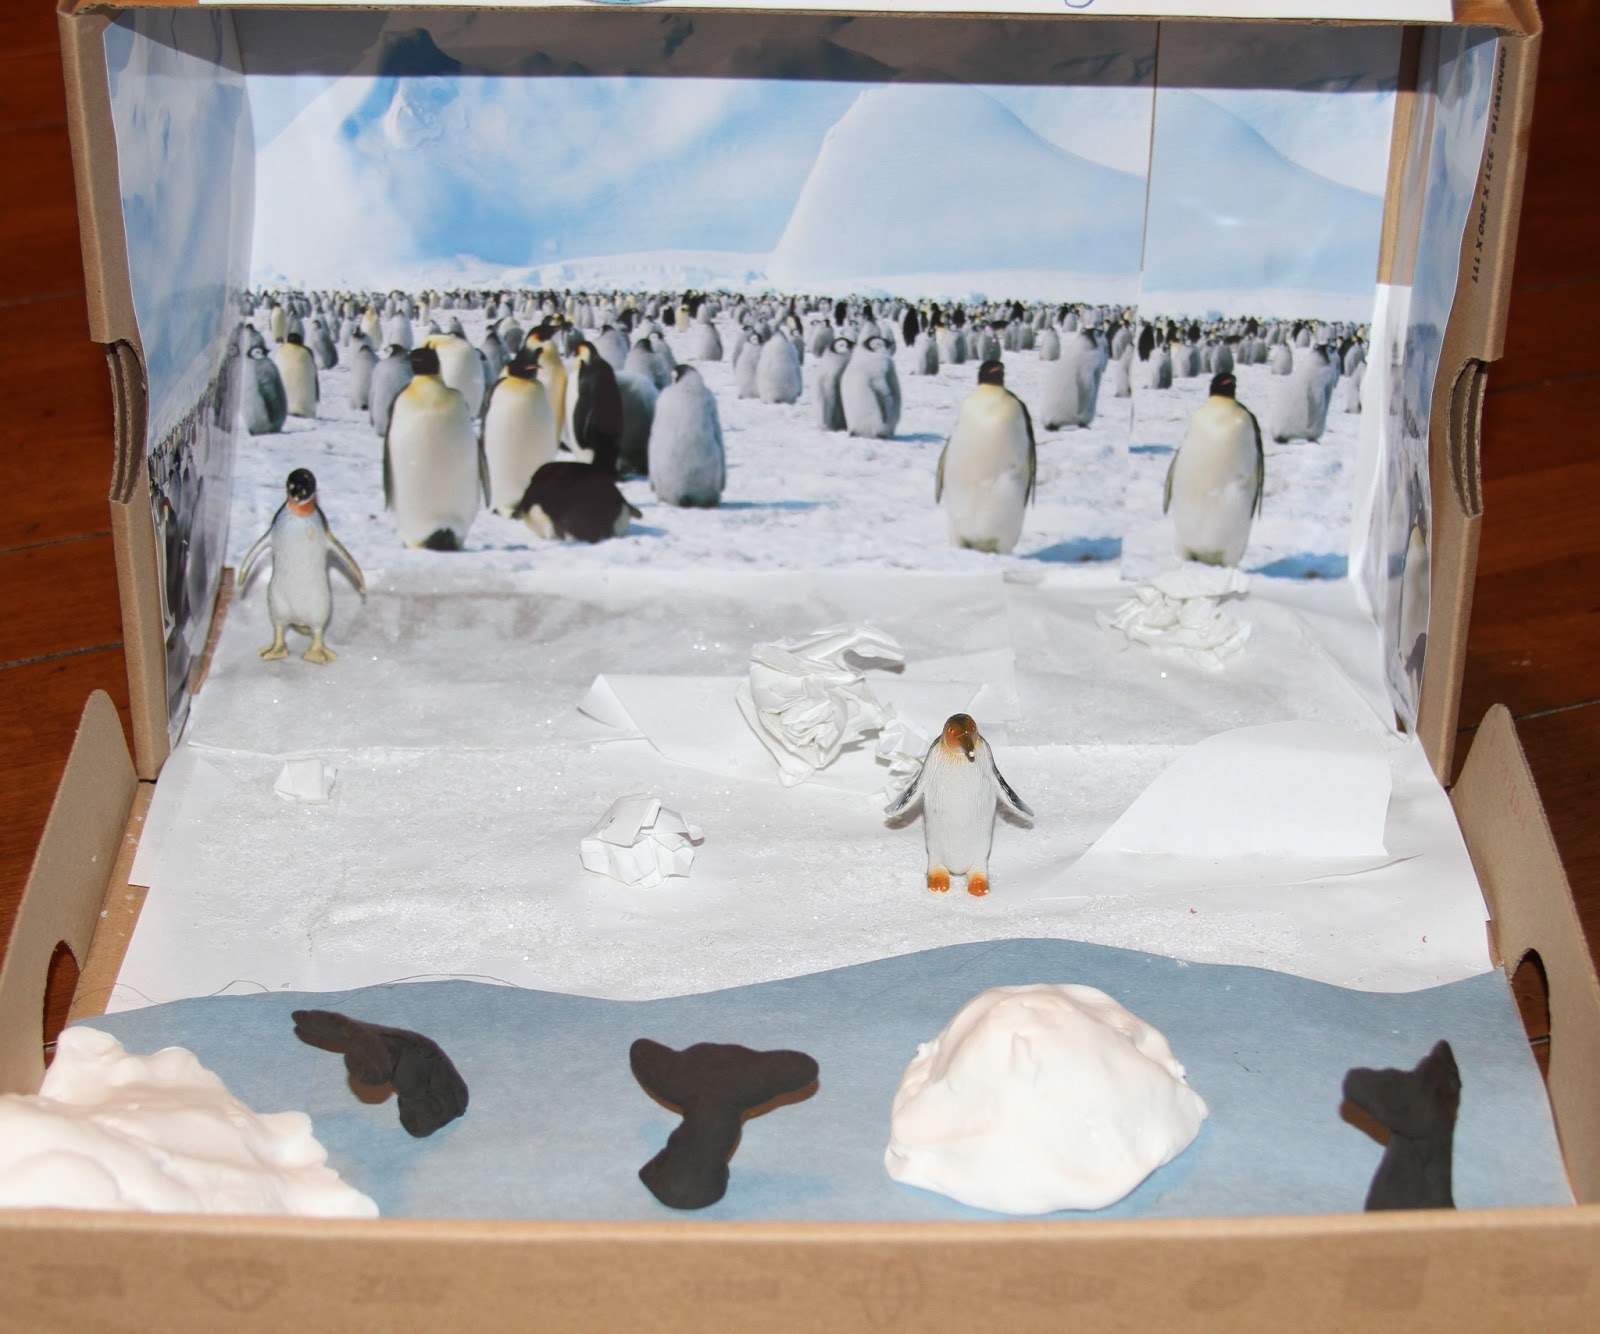 Elementary Habitat Shoe Box Project http://losingsleepcountingsheep.blogspot.com/2013/02/popularity-of-penguins.html